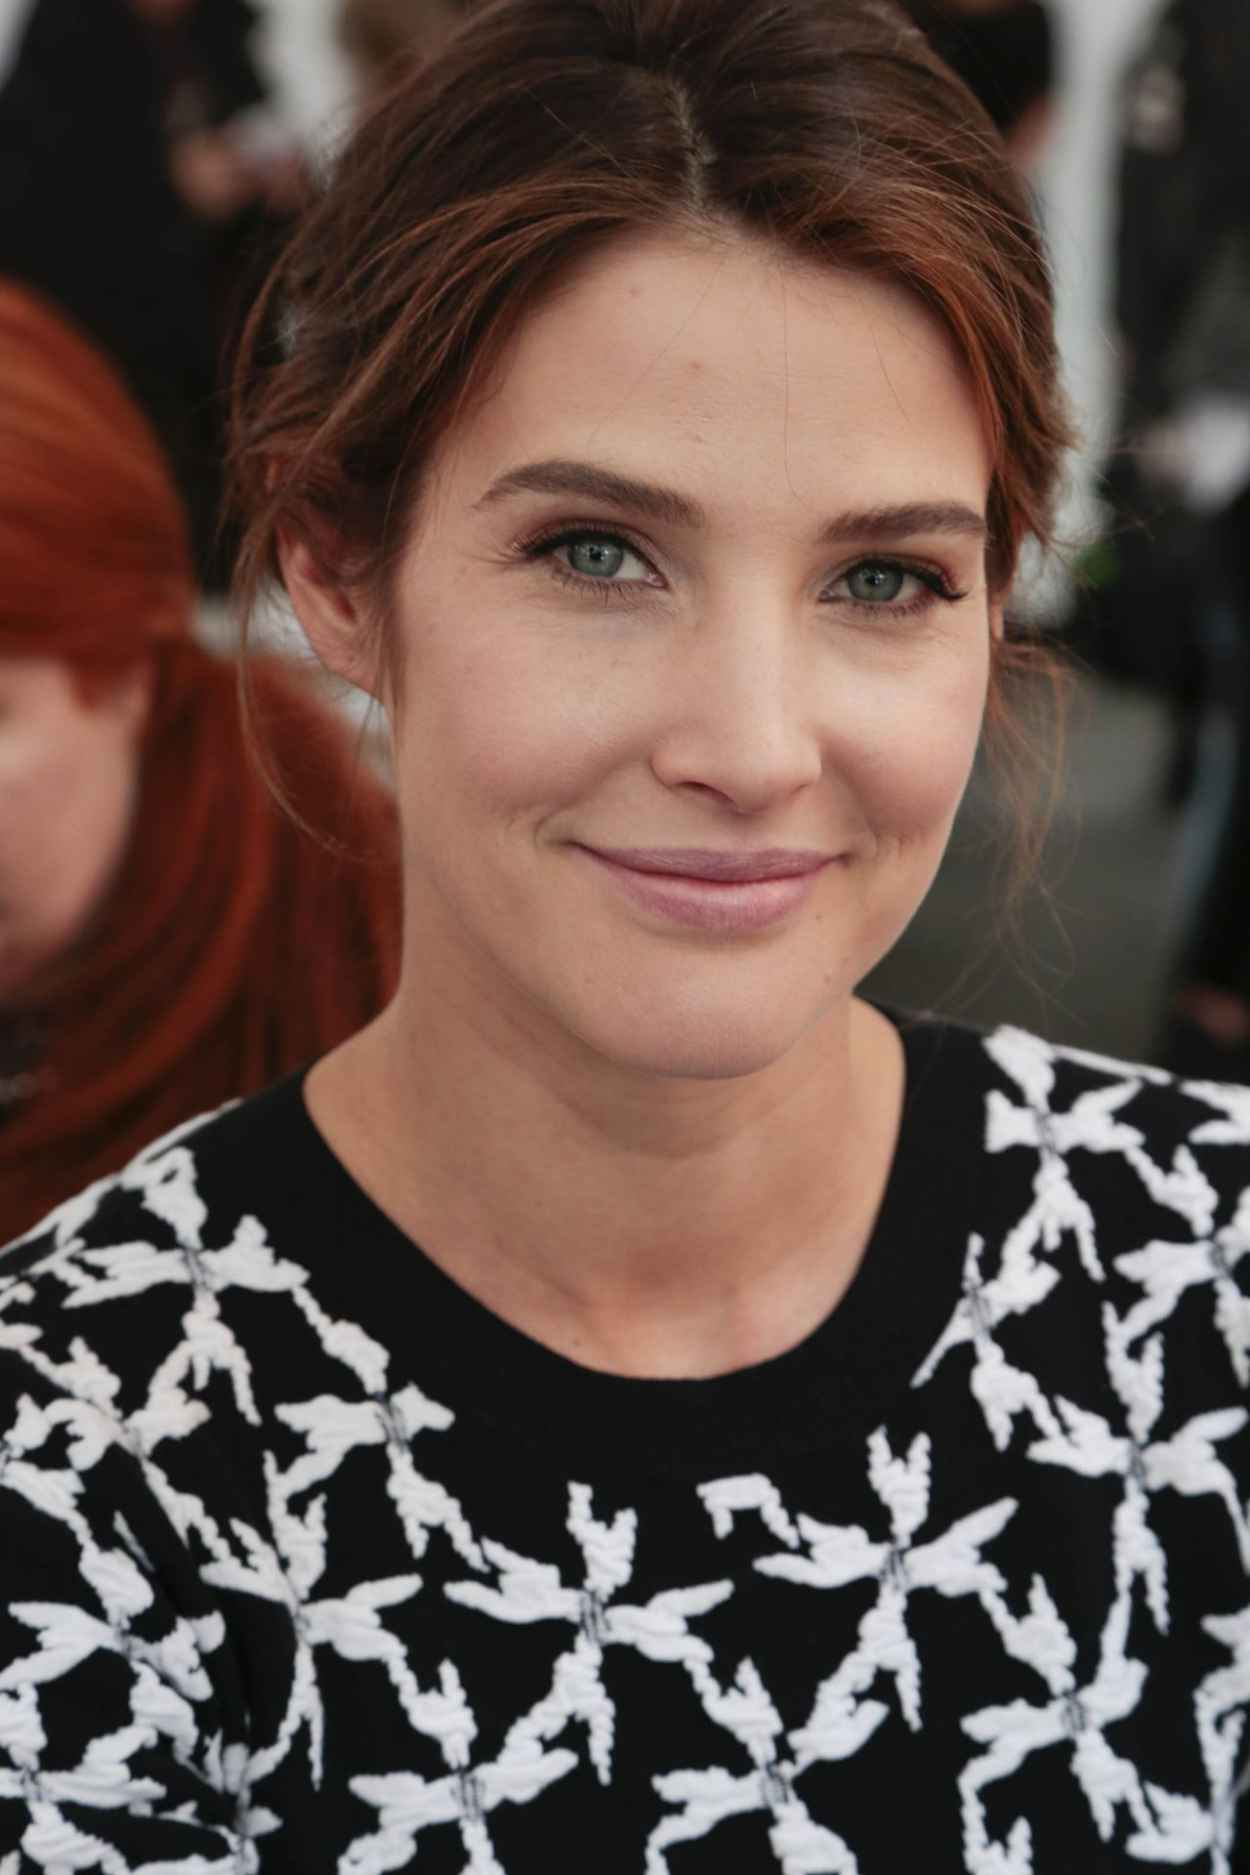 Cobie Smulders At The Tanya Taylor Fashion Show New York